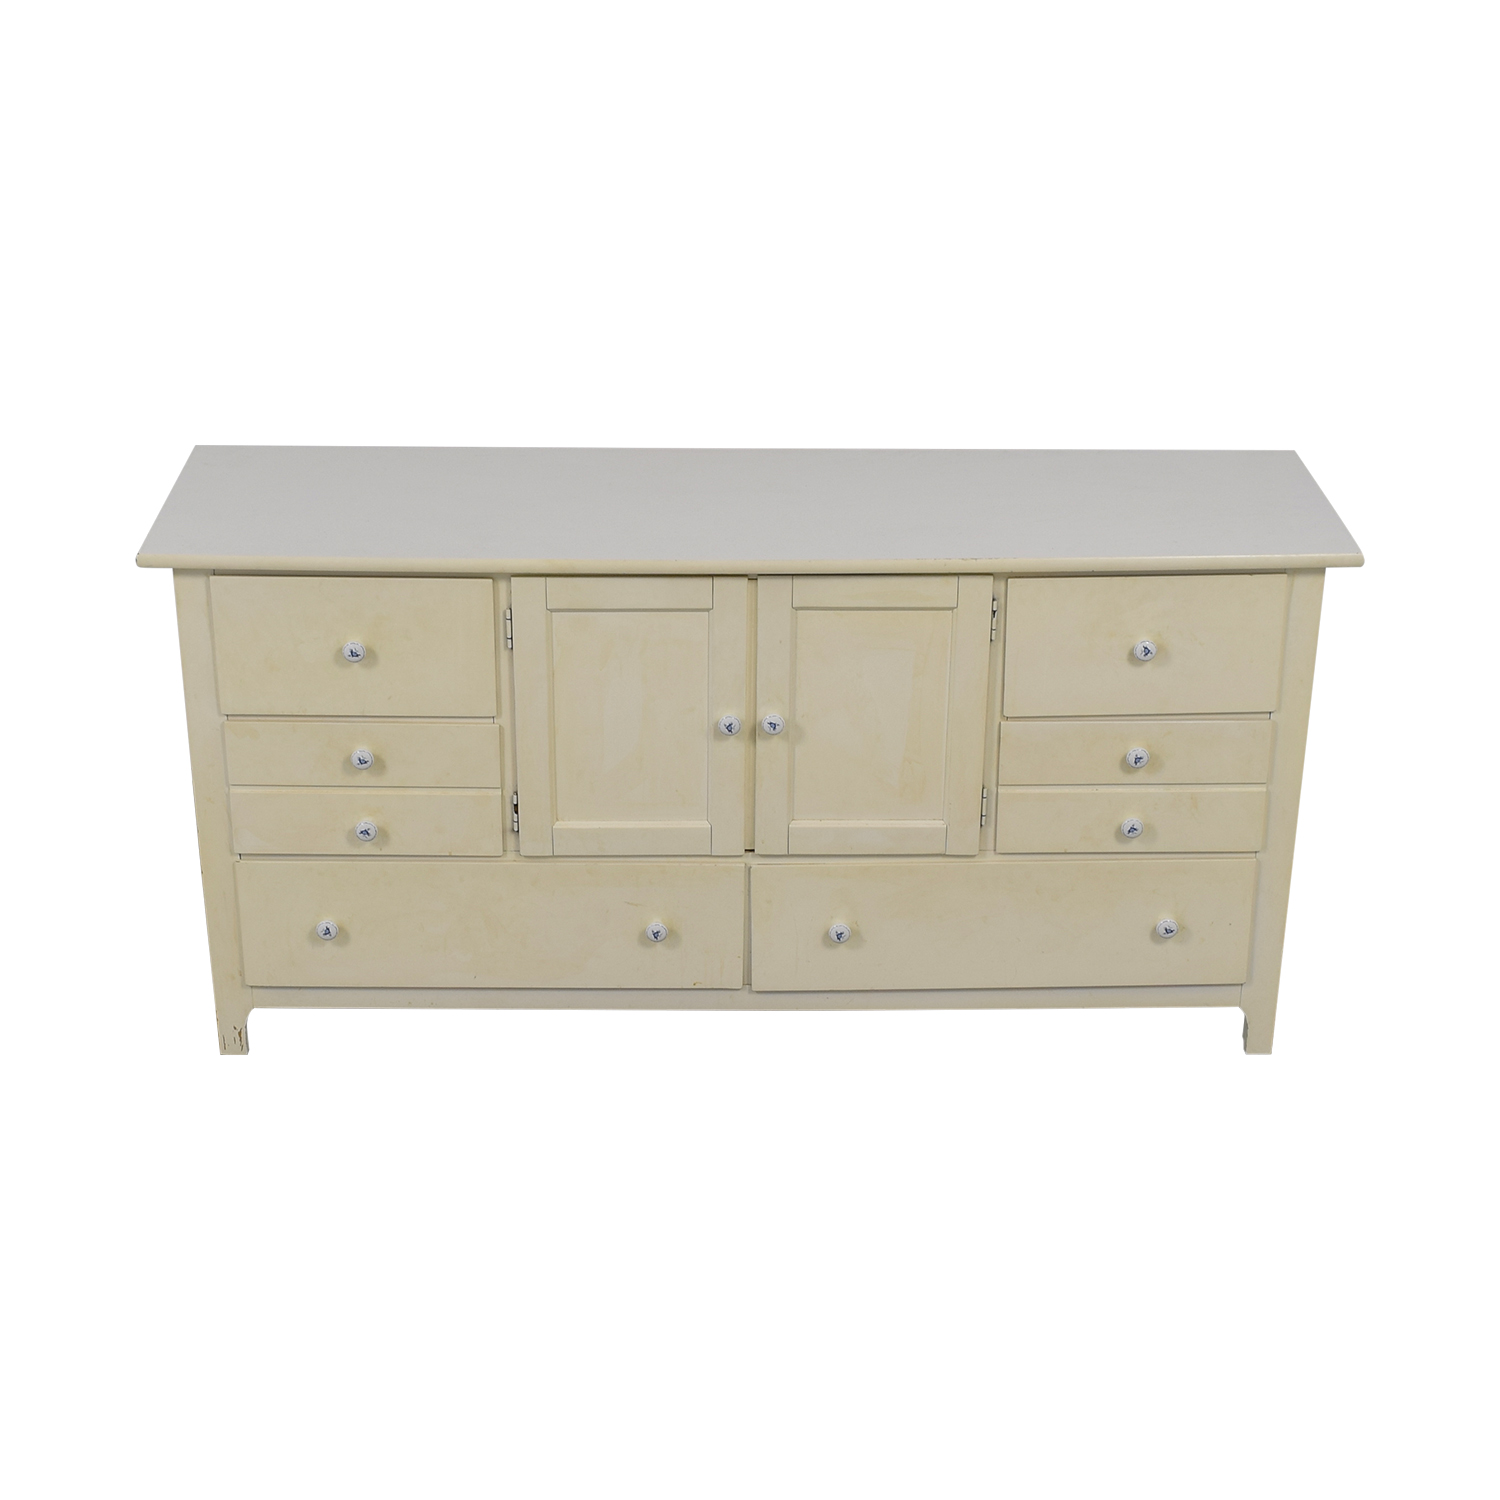 Stanley Furniture Stanley Furniture White Eight Drawer Dresser Storage